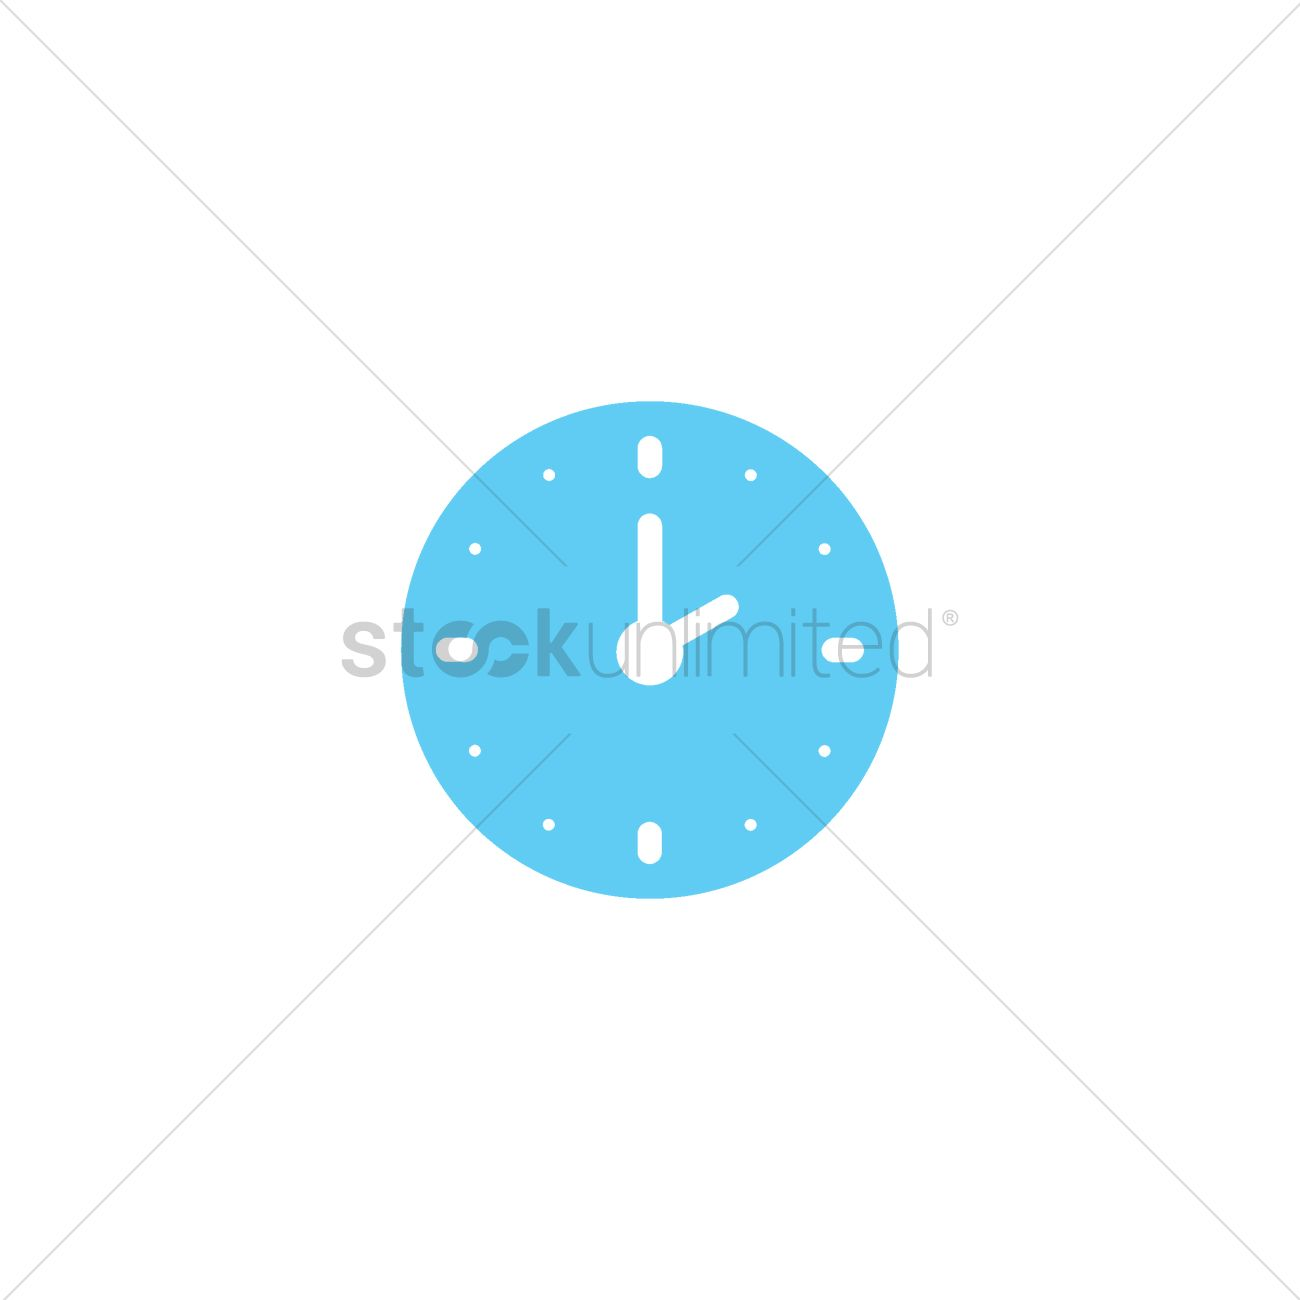 Clock icon Vector Image - 2005252 | StockUnlimited